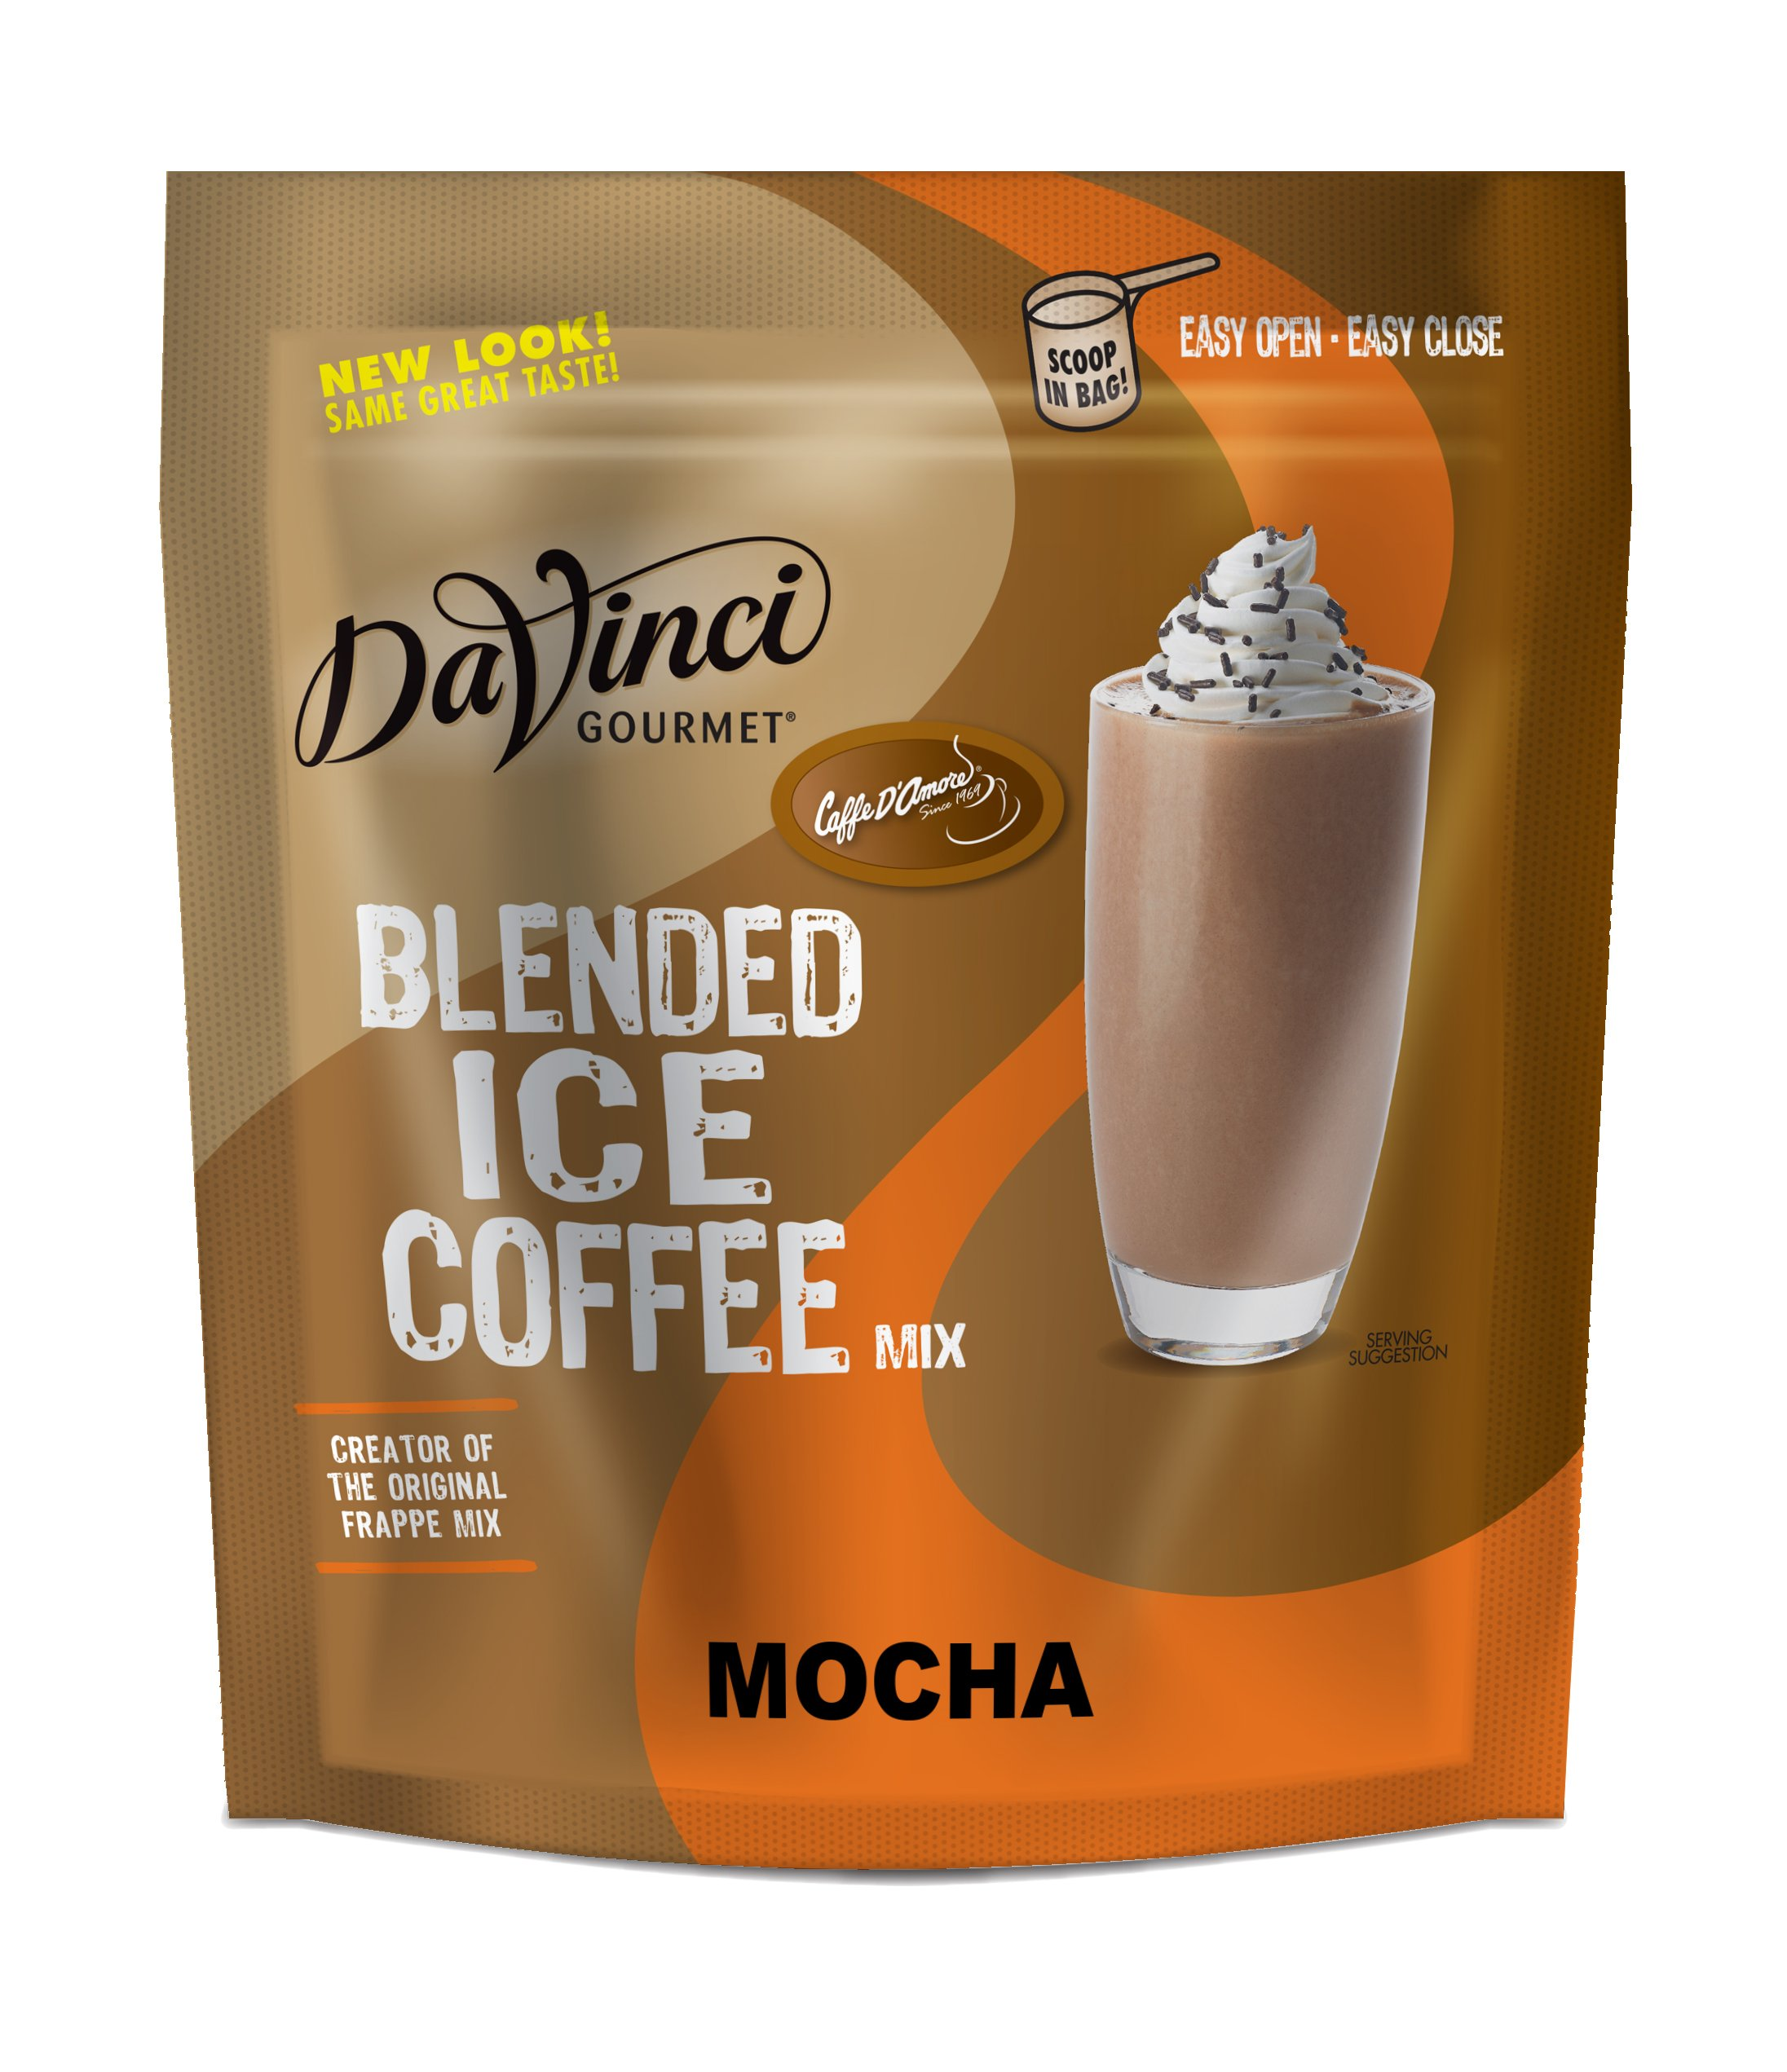 DaVinci Gourmet Blended Ice Coffee Mix, Mocha, 3 Pound